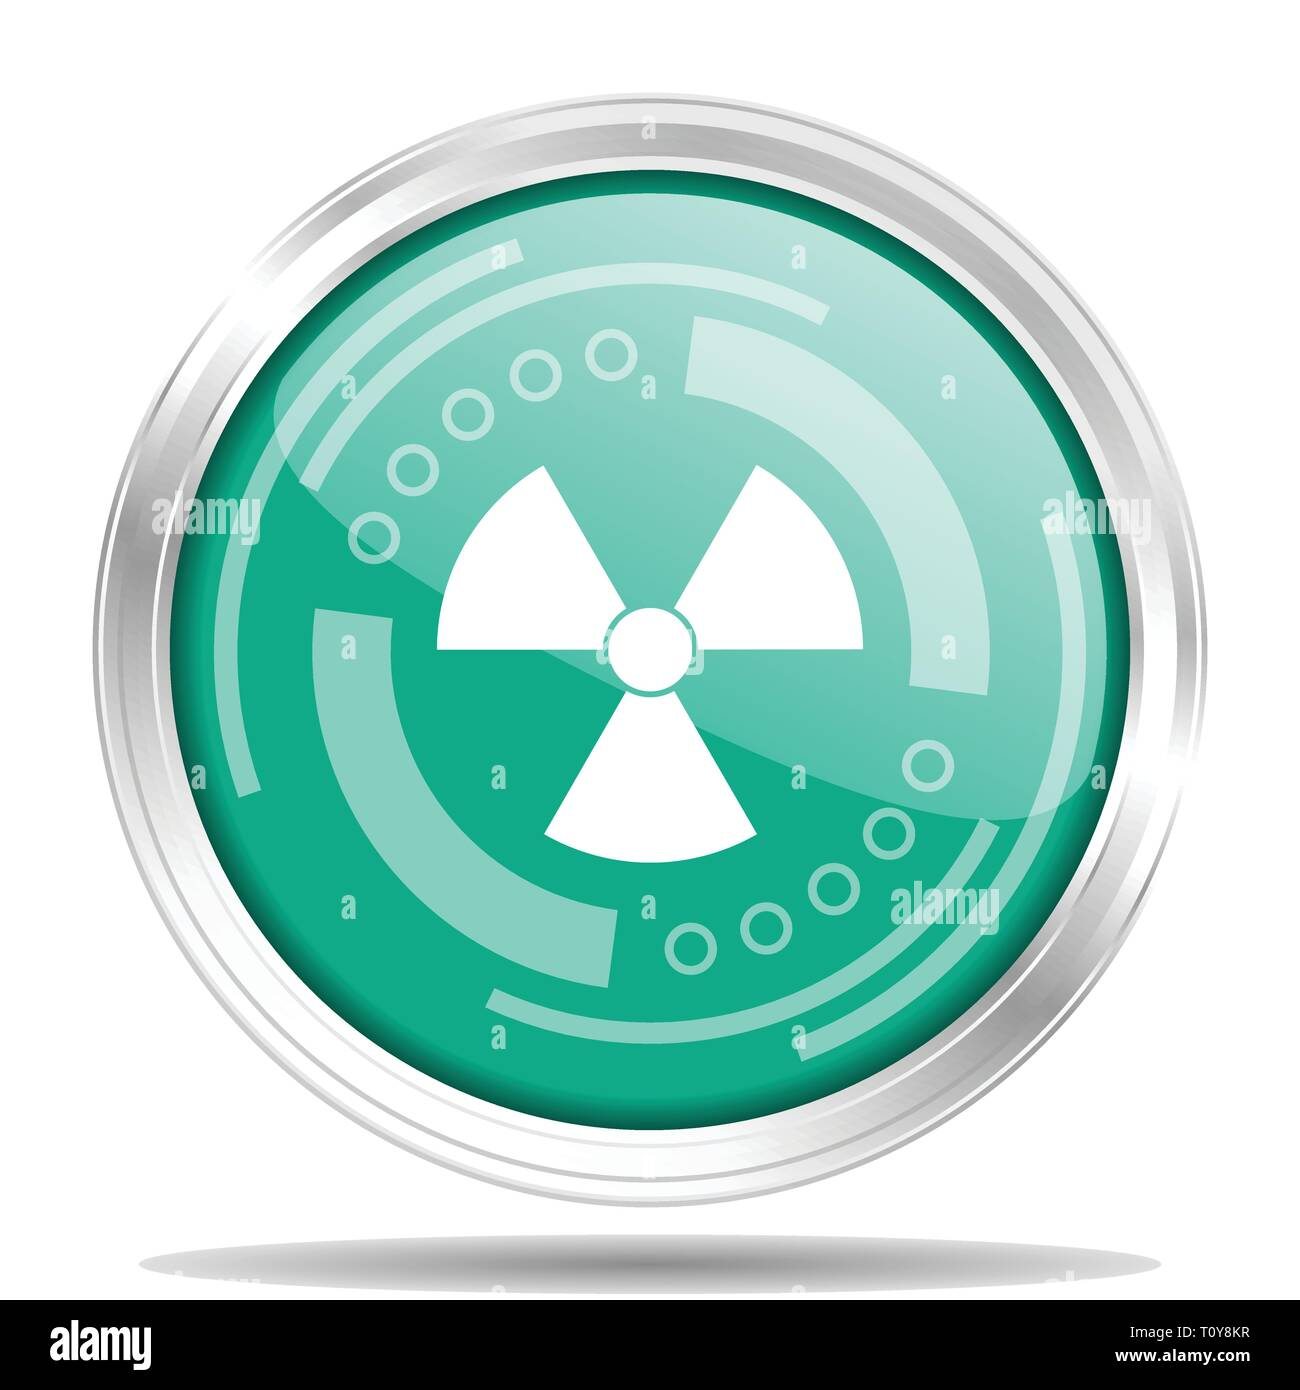 Radiation silver metallic chrome border round web icon, vector illustration for webdesign and mobile applications isolated on white background - Stock Vector